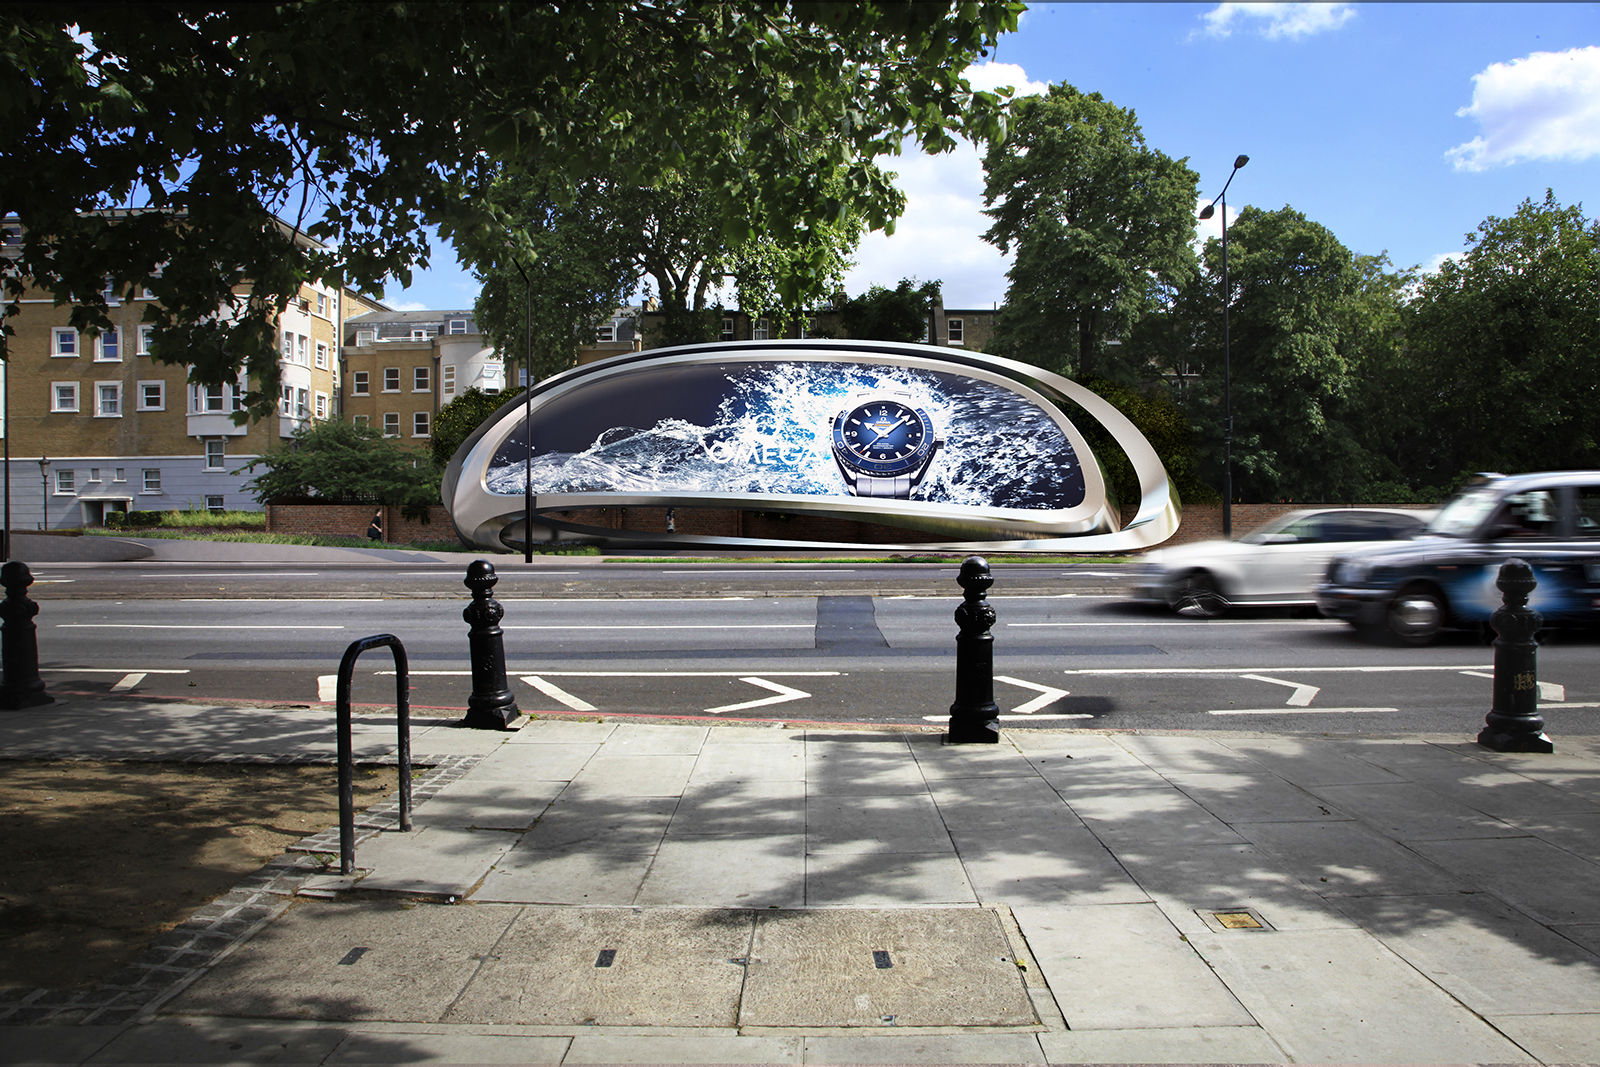 View of The Kensington, by Zaha Hadid Architects for JCDecaux in Earls Court.